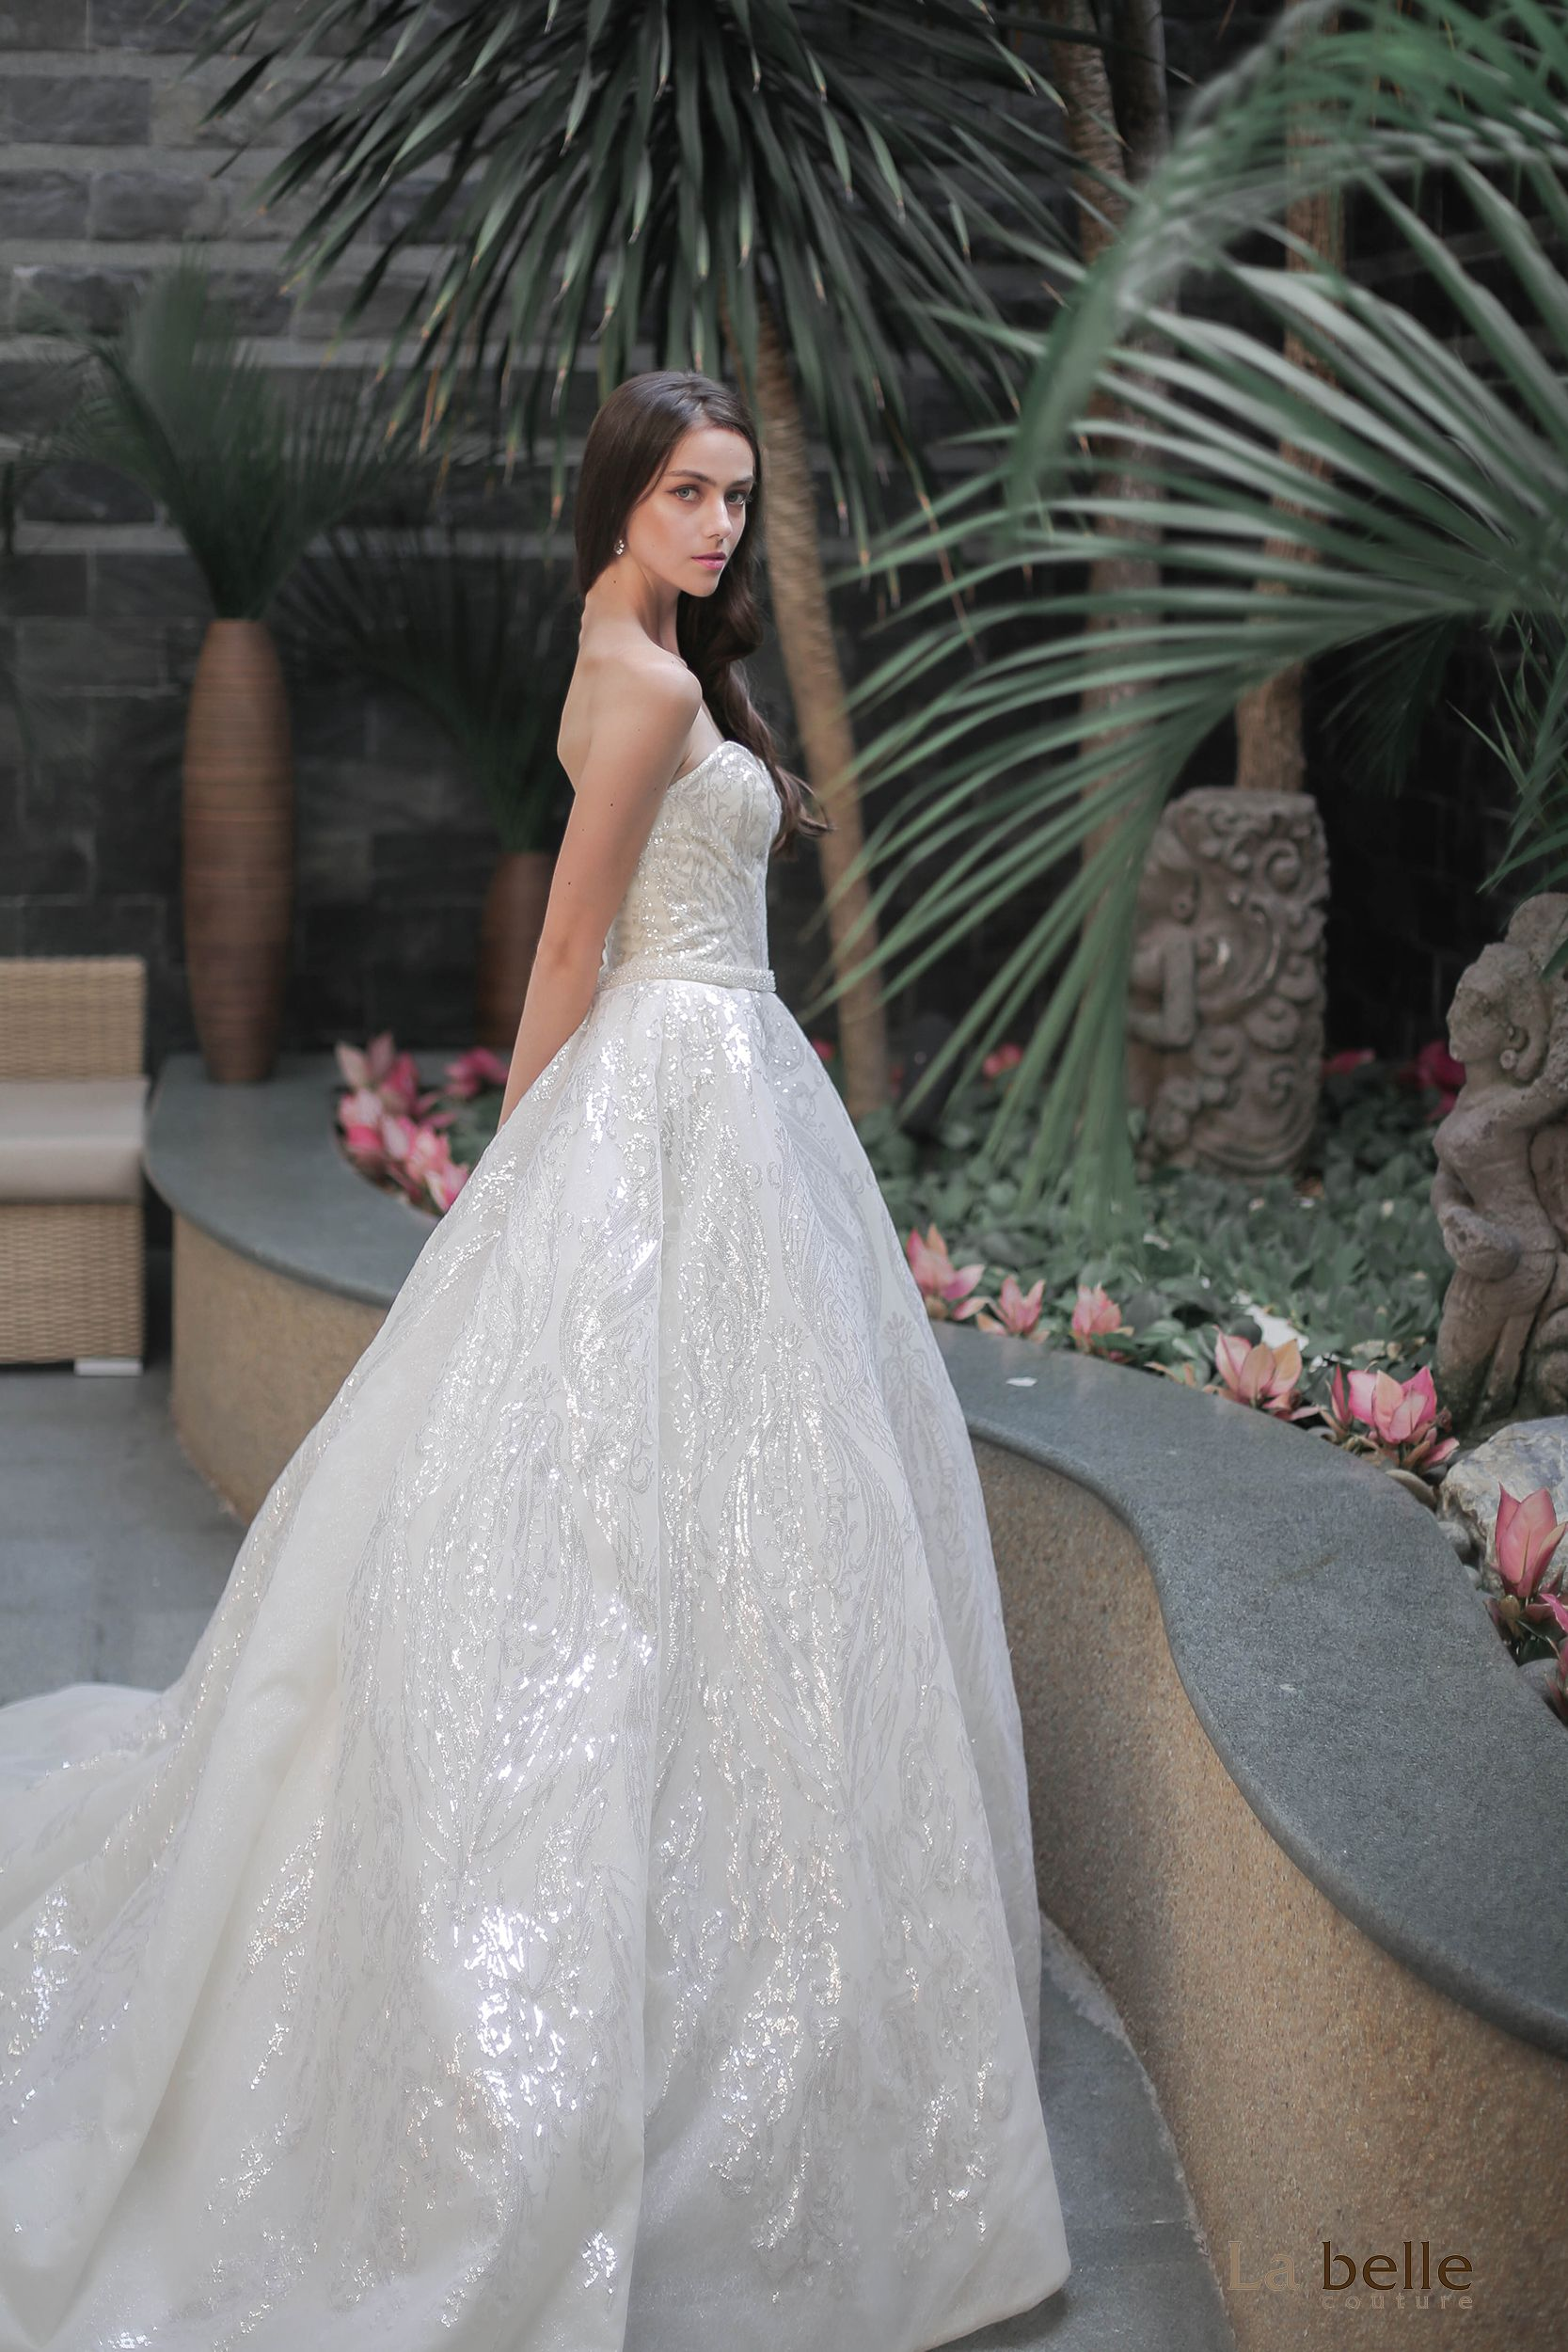 Although Most Glittery Ensembles Are Made To Make A Statement But It Doesn T Mean It Is Only Rental Wedding Dresses Bridal Dress Rental Couture Wedding Gowns [ 2500 x 1667 Pixel ]